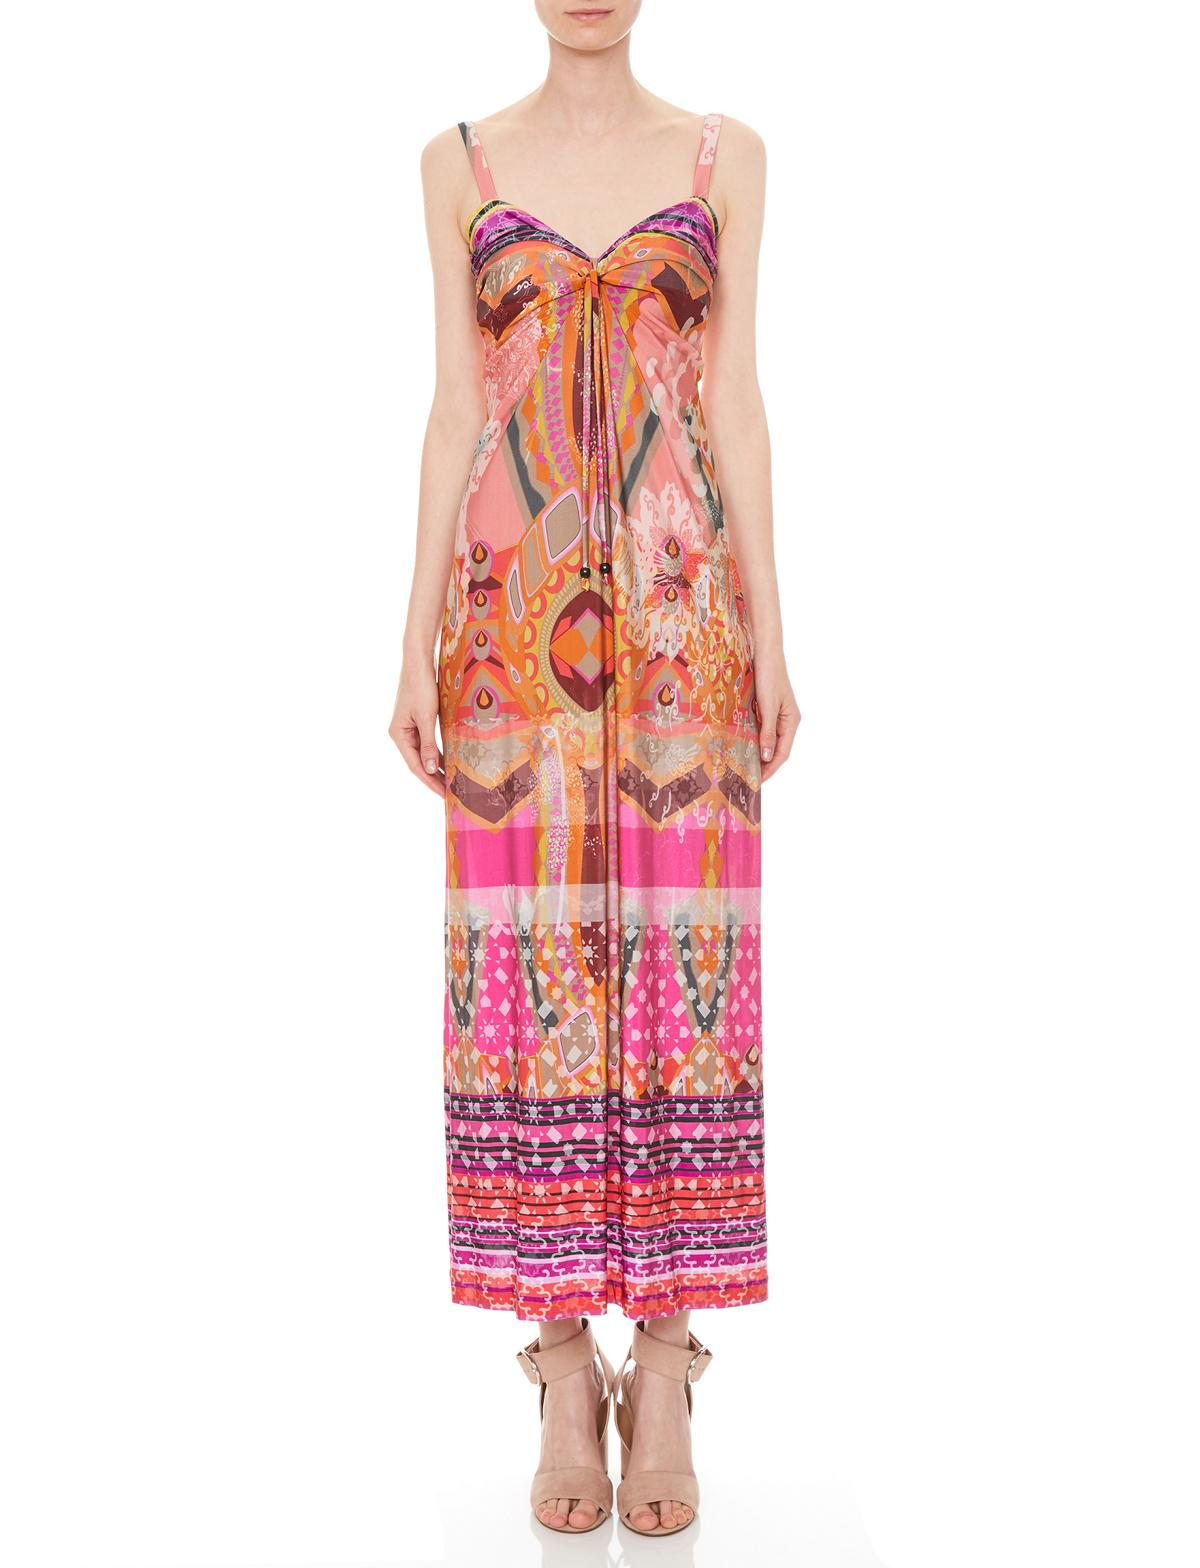 5d1e059ea7c335 Front of Ana Alcazar Maxi Dress Manialyas worn by model